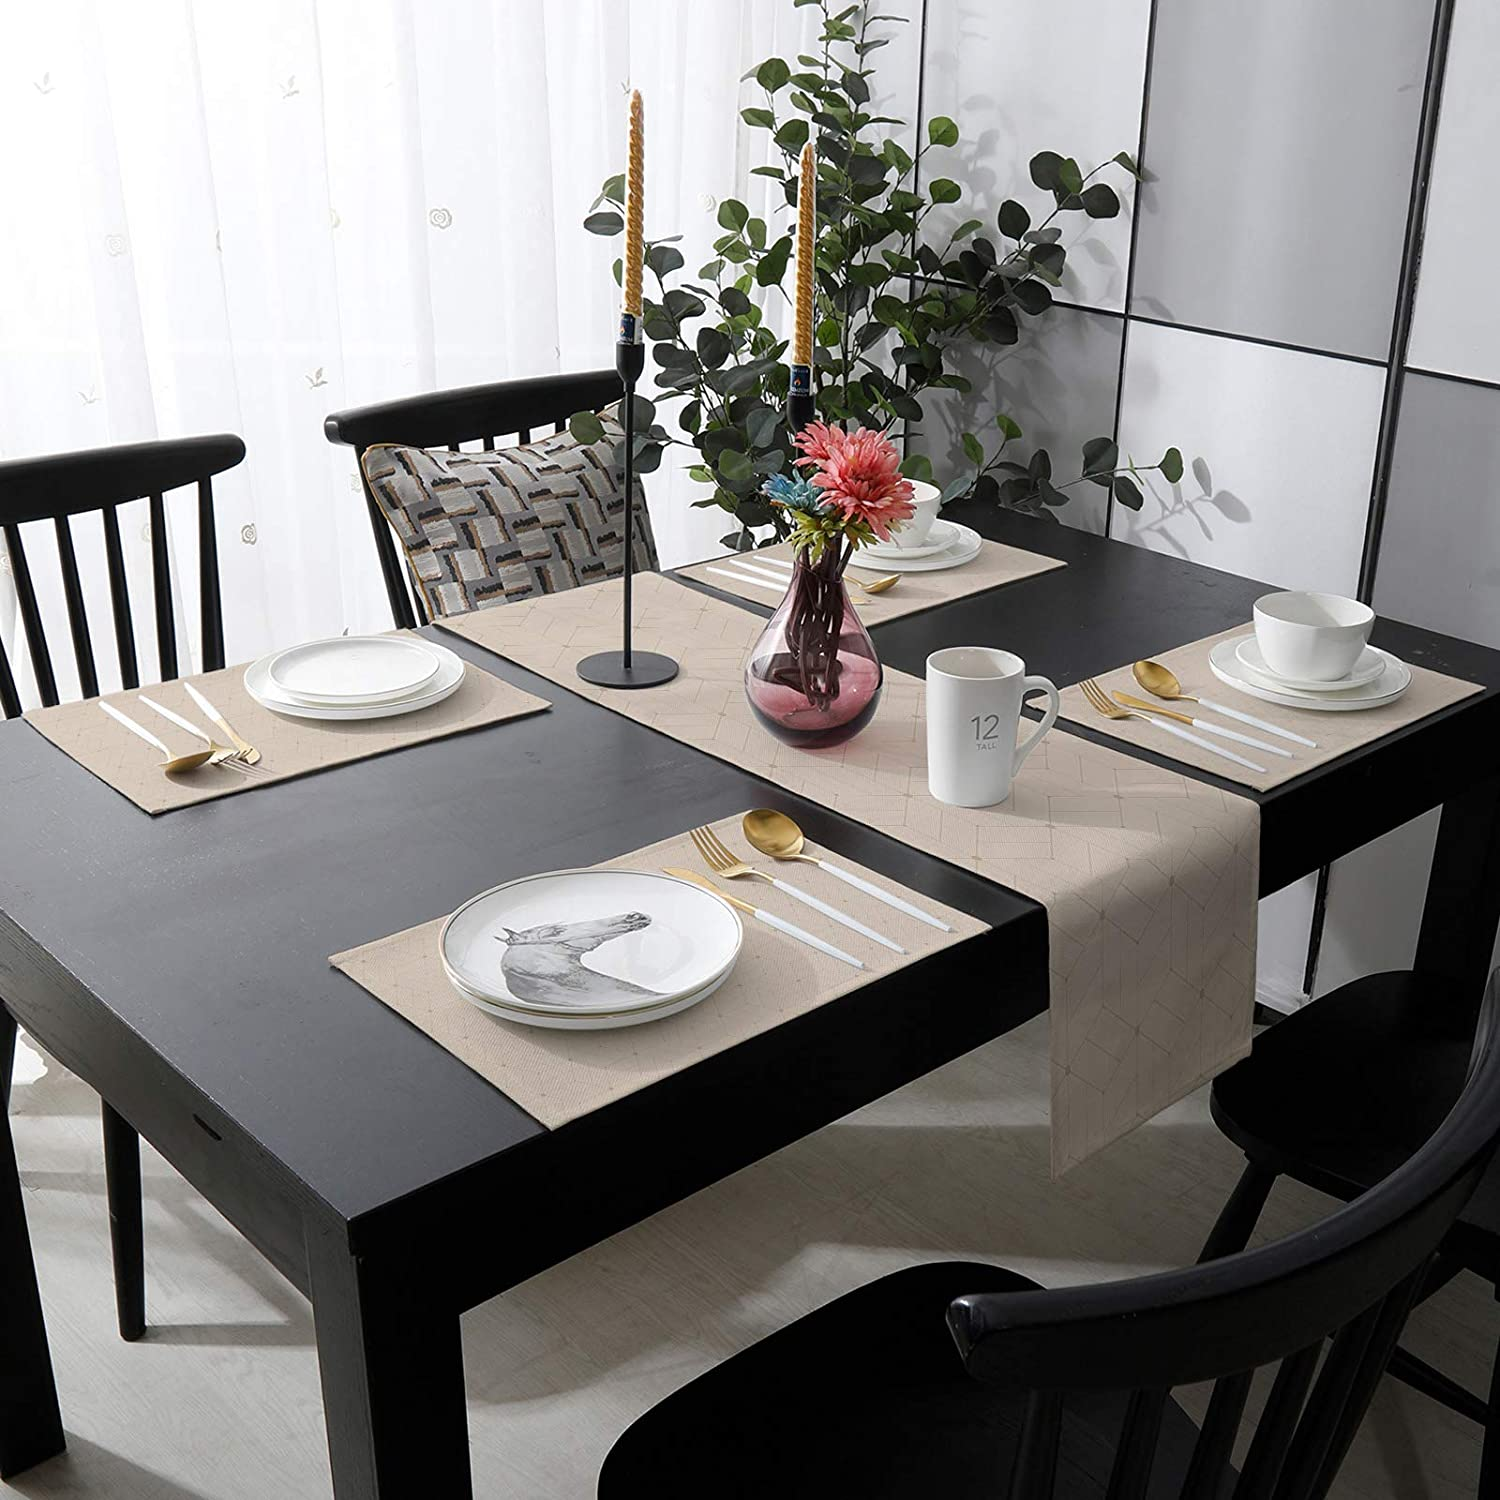 Reservation Outdoor Table Quality inspection Runner and 6 Kitchen Heat-Proof Placemats Cotton